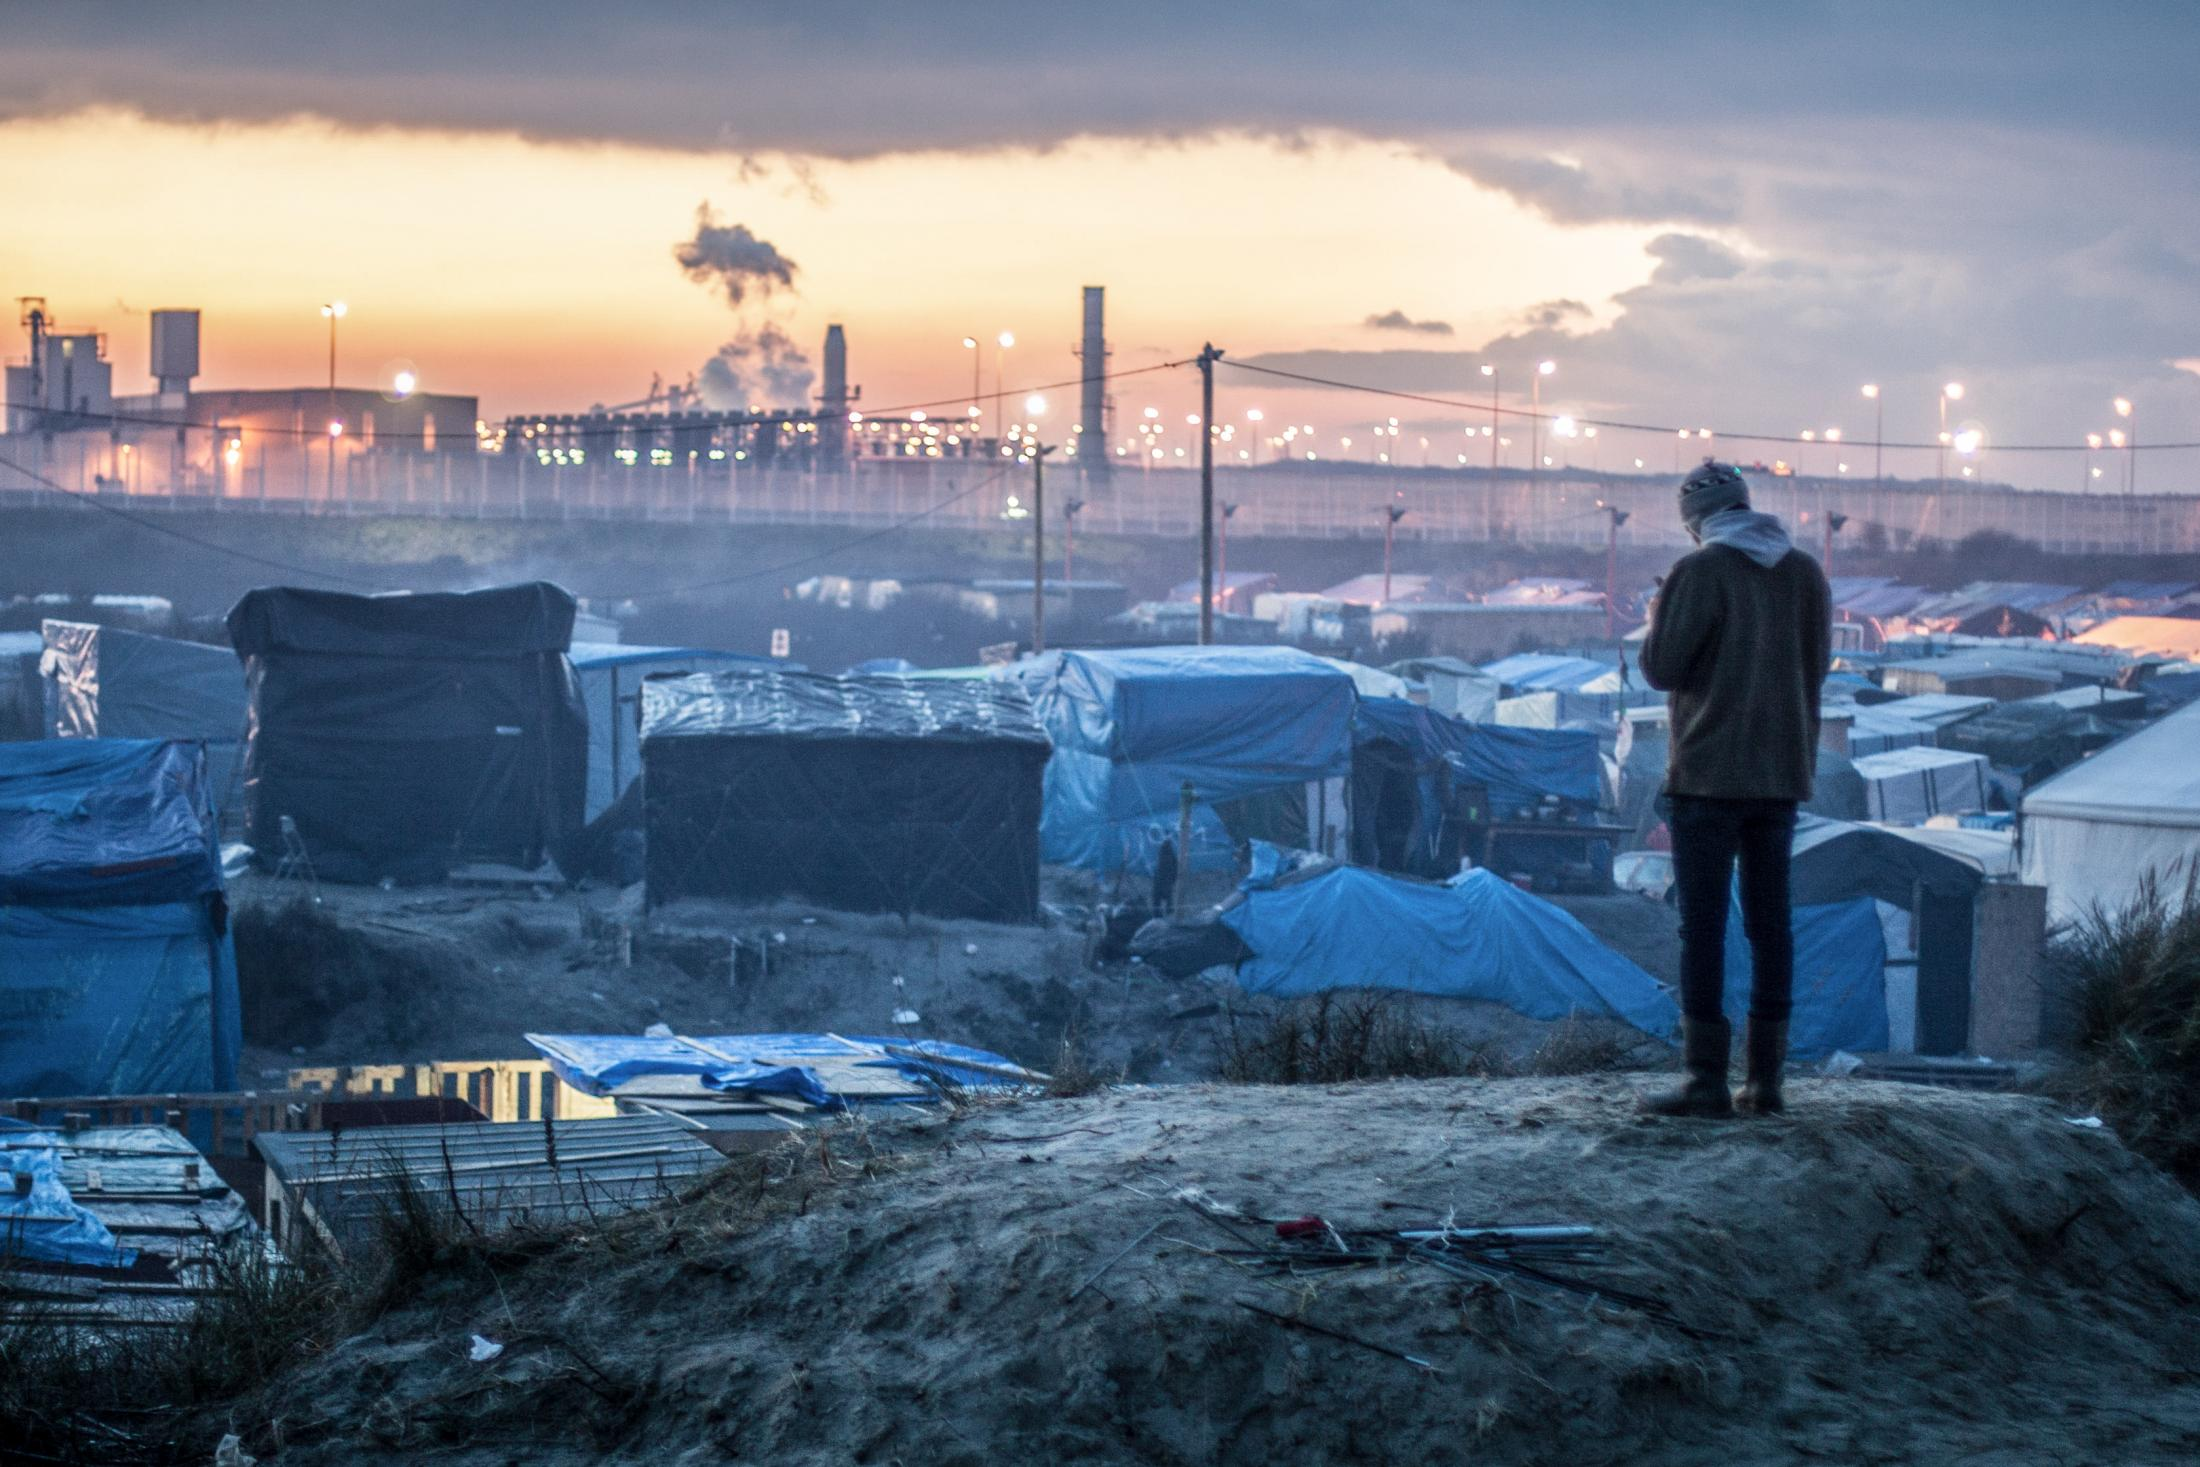 The Jungle of Calais (France)